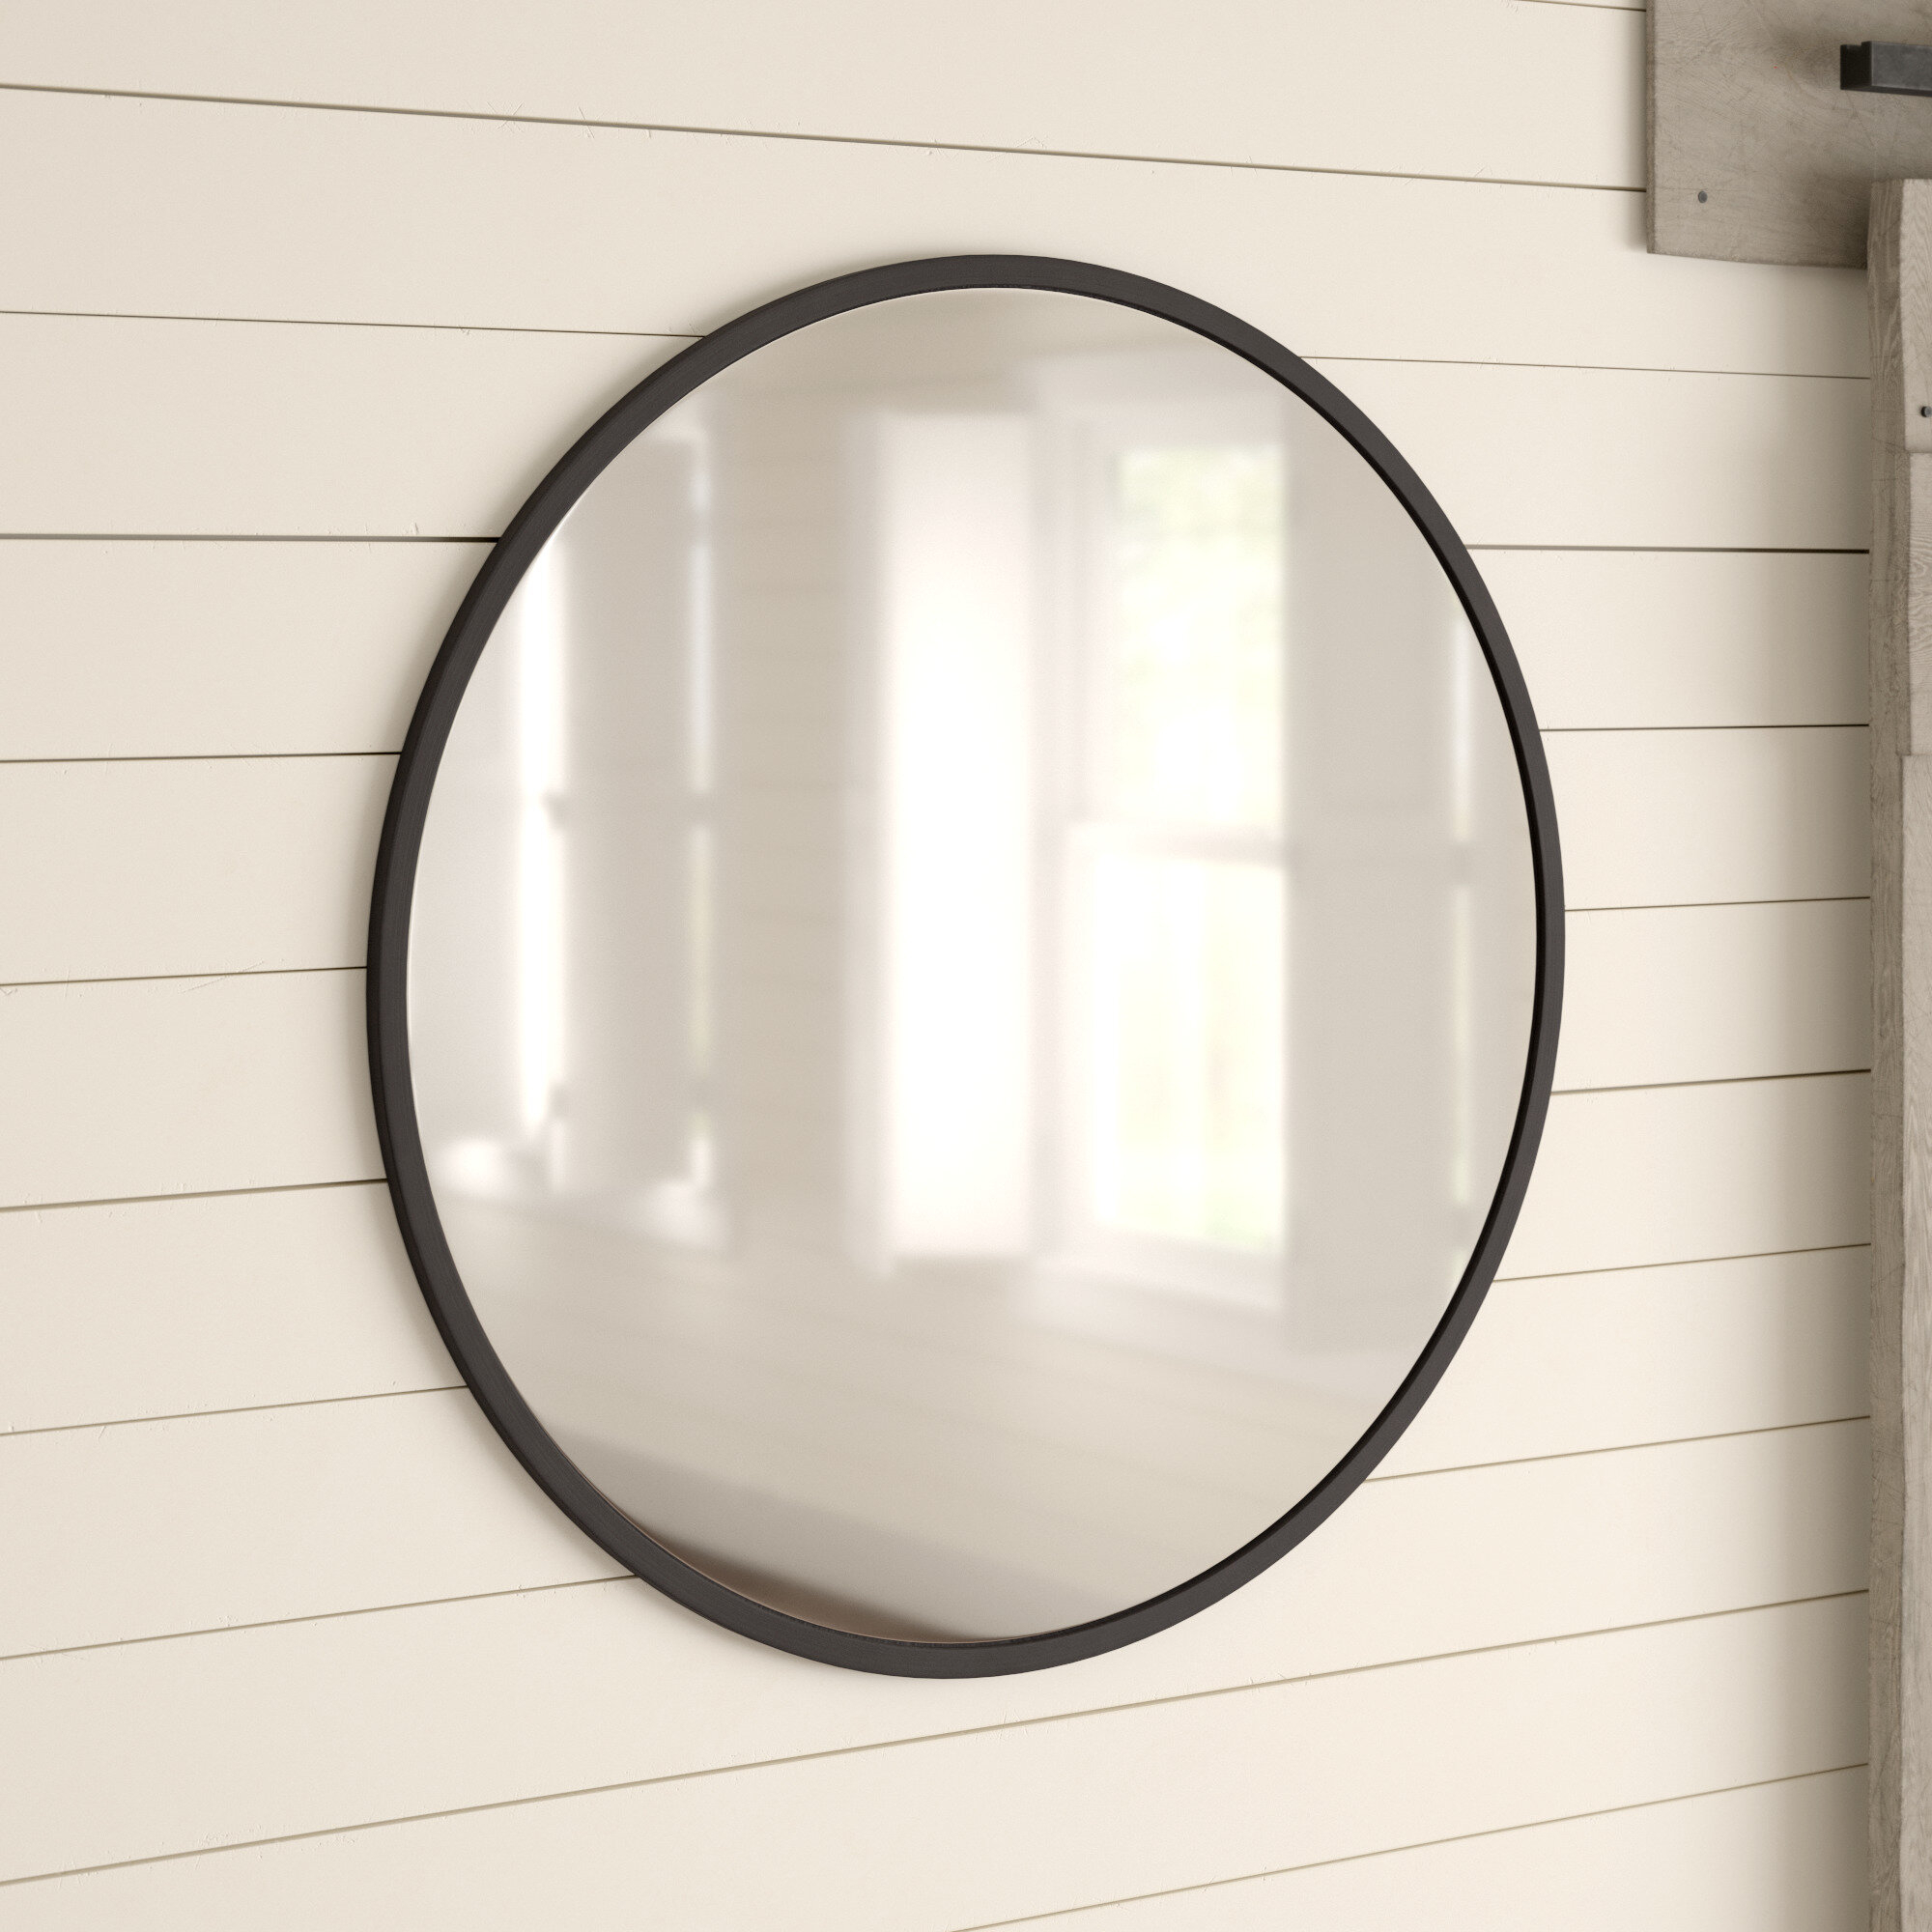 Hub Modern And Contemporary Accent Mirror pertaining to Hub Modern and Contemporary Accent Mirrors (Image 11 of 30)